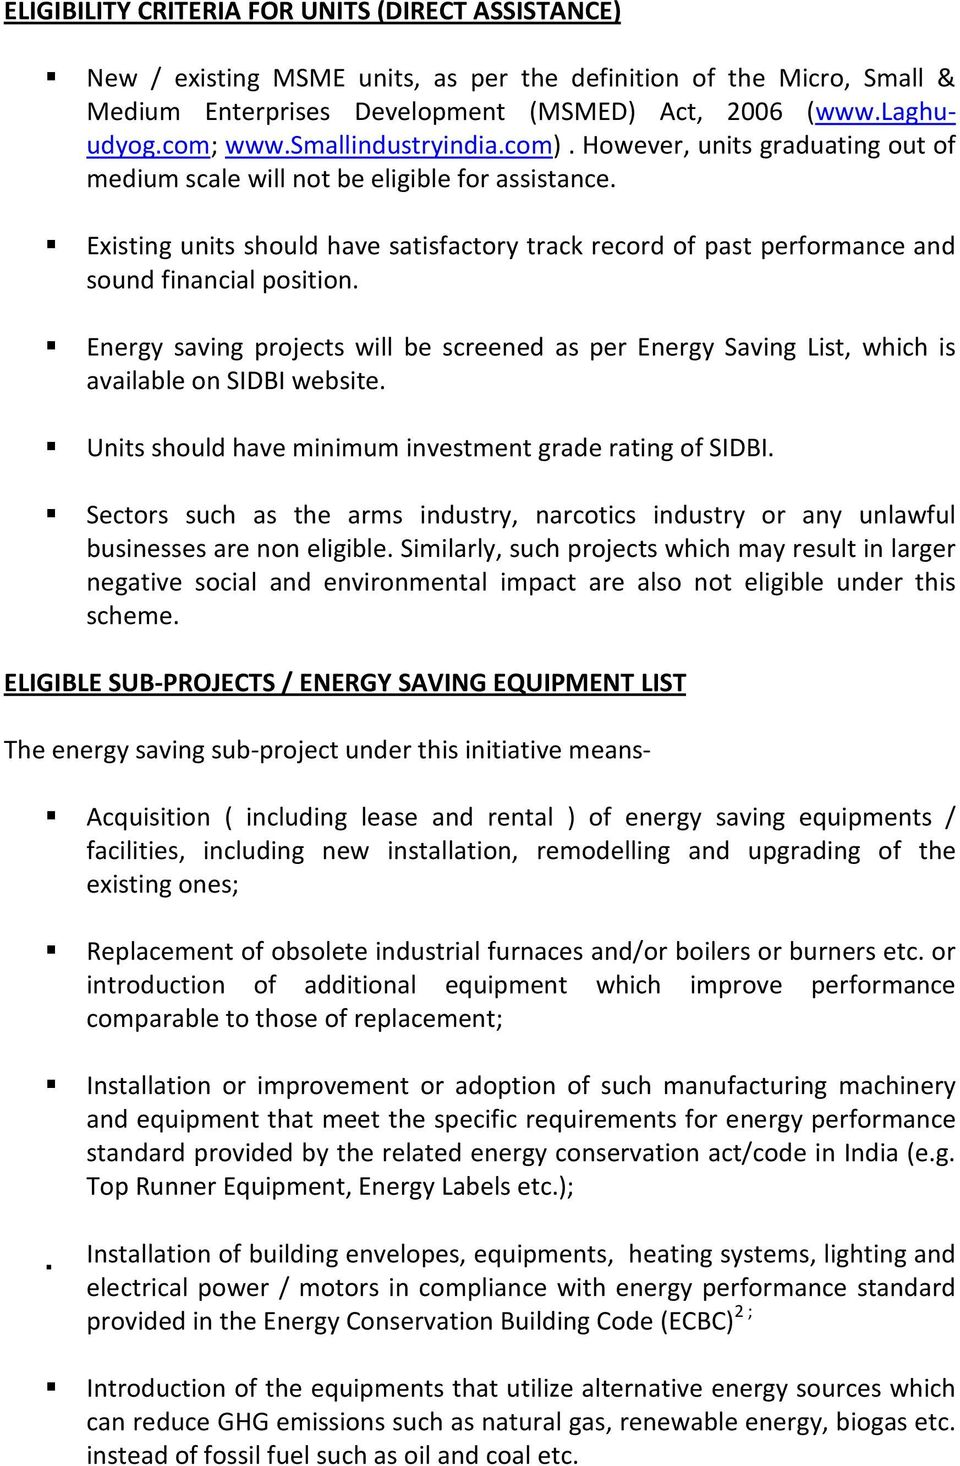 Existing units should have satisfactory track record of past performance and sound financial position. projects will be screened as per Saving List, which is available on SIDBI website.